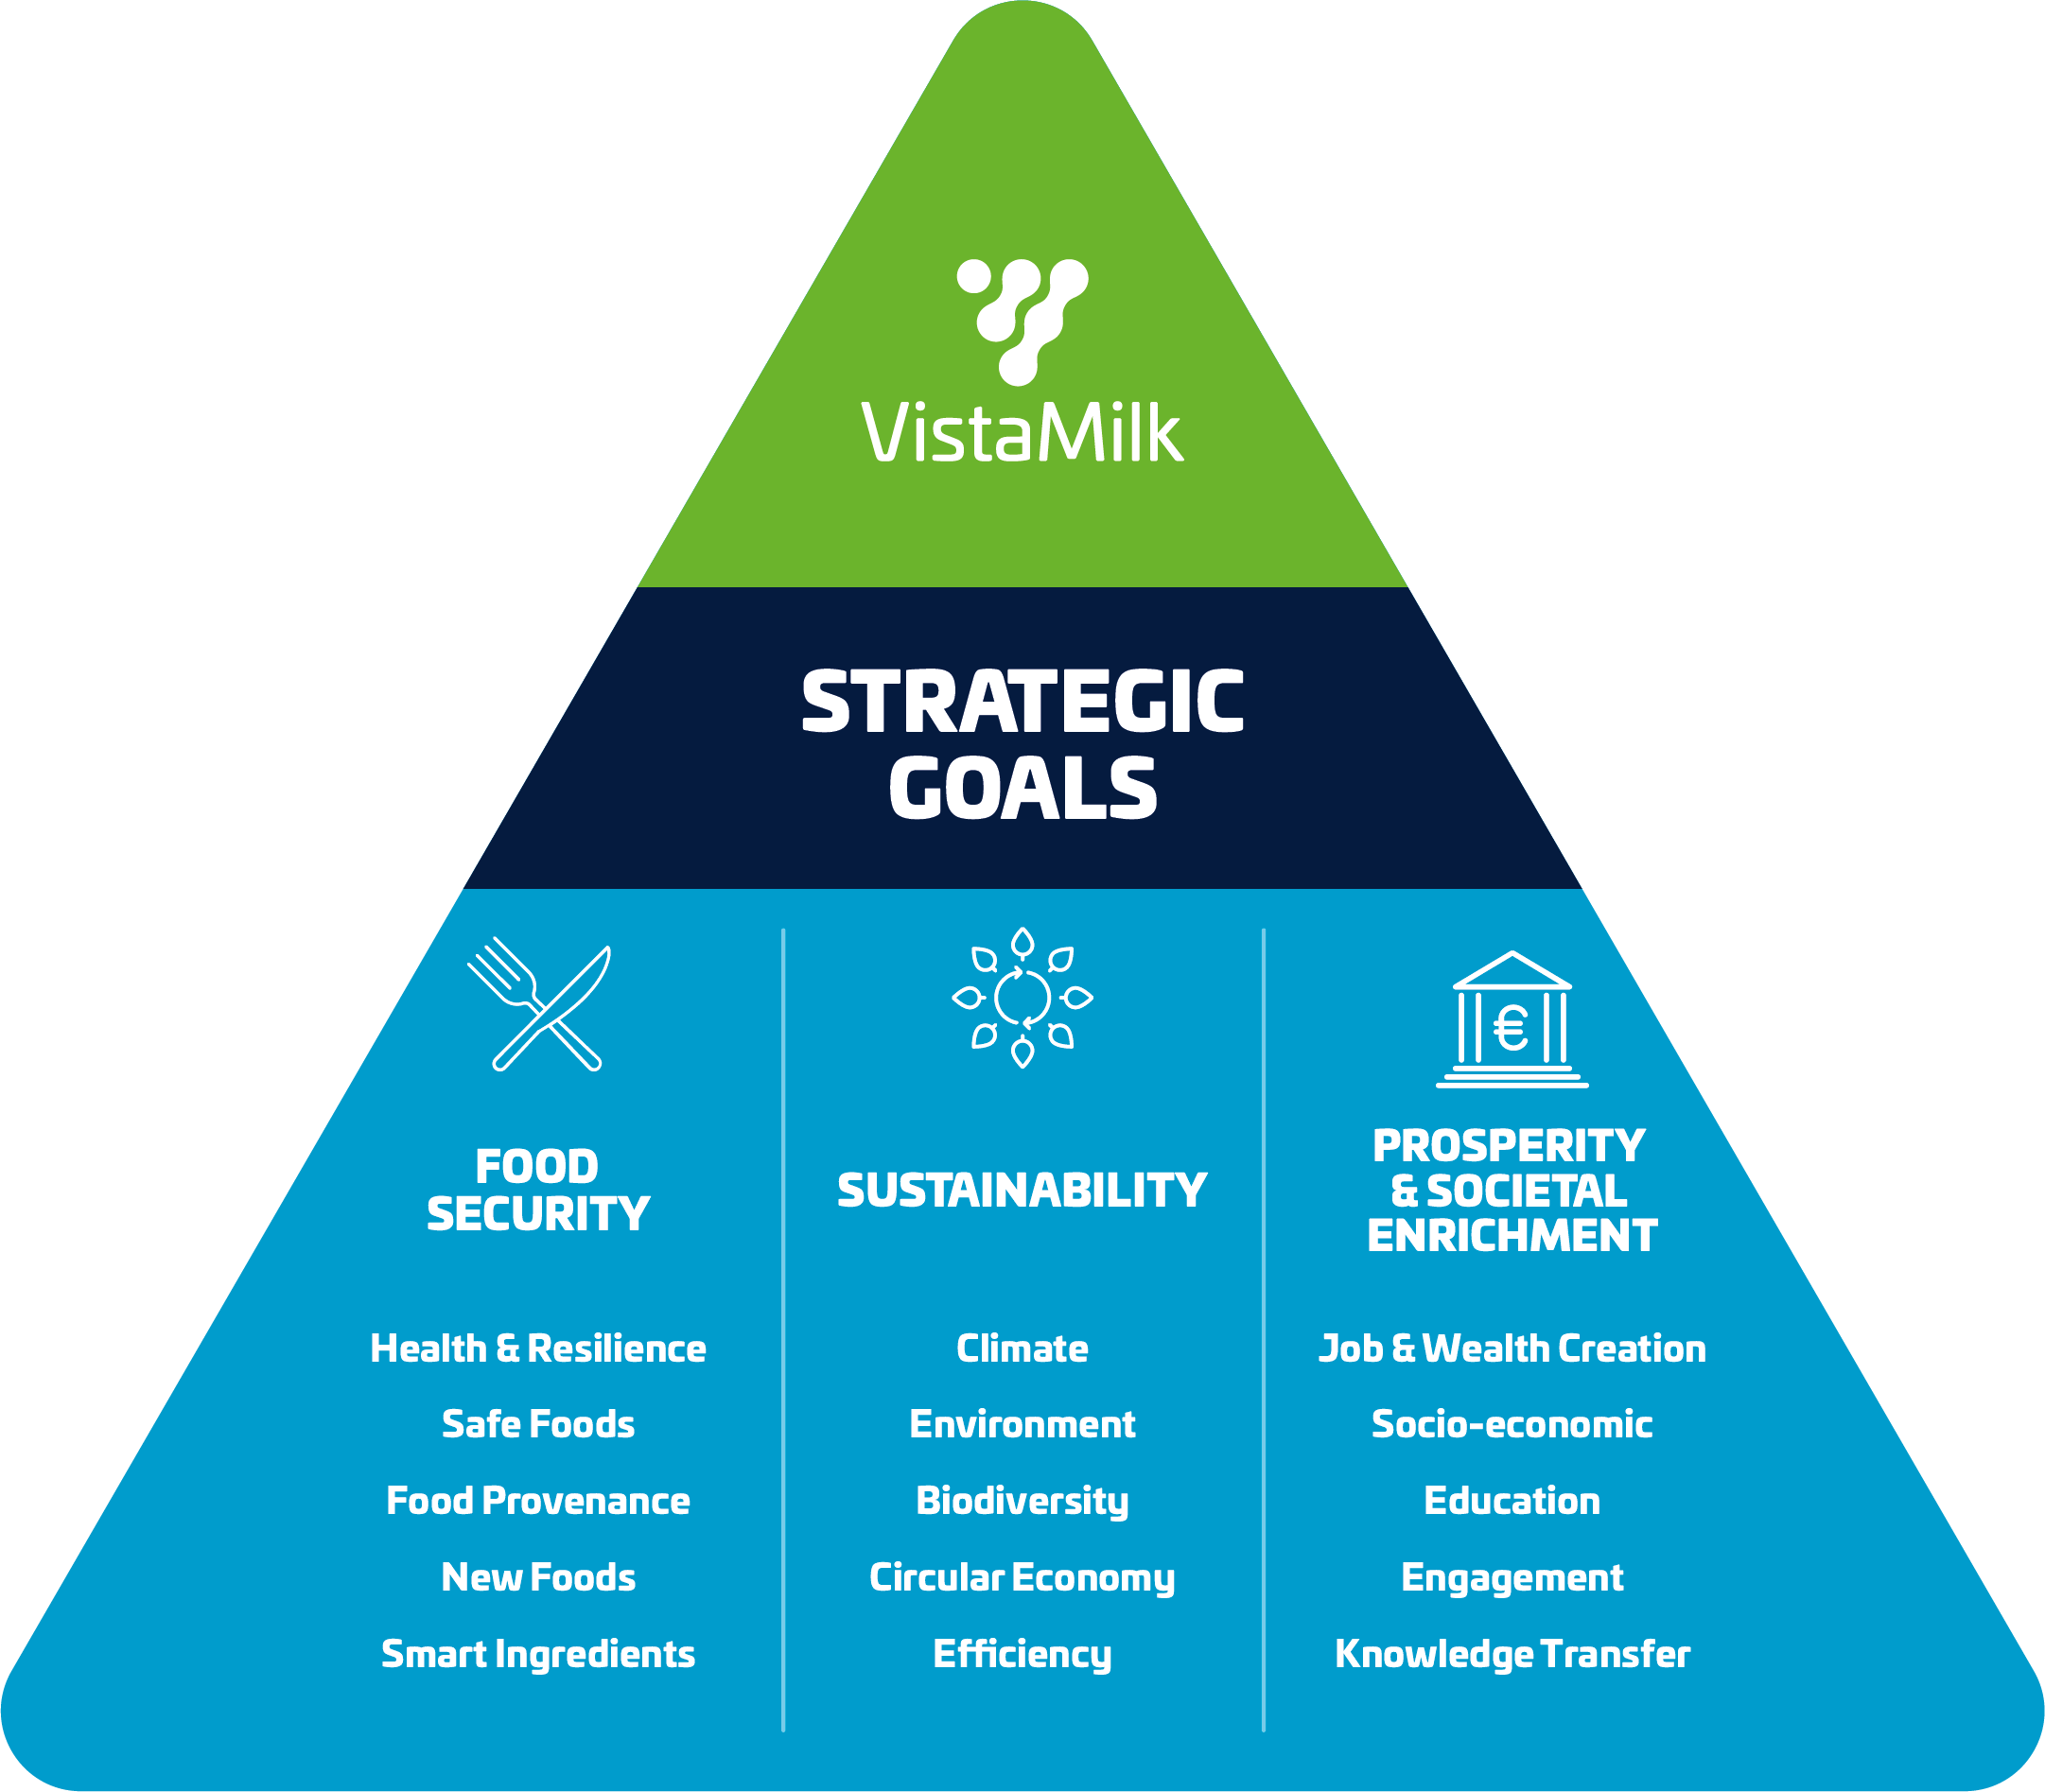 Strategic Goals | VistaMilk